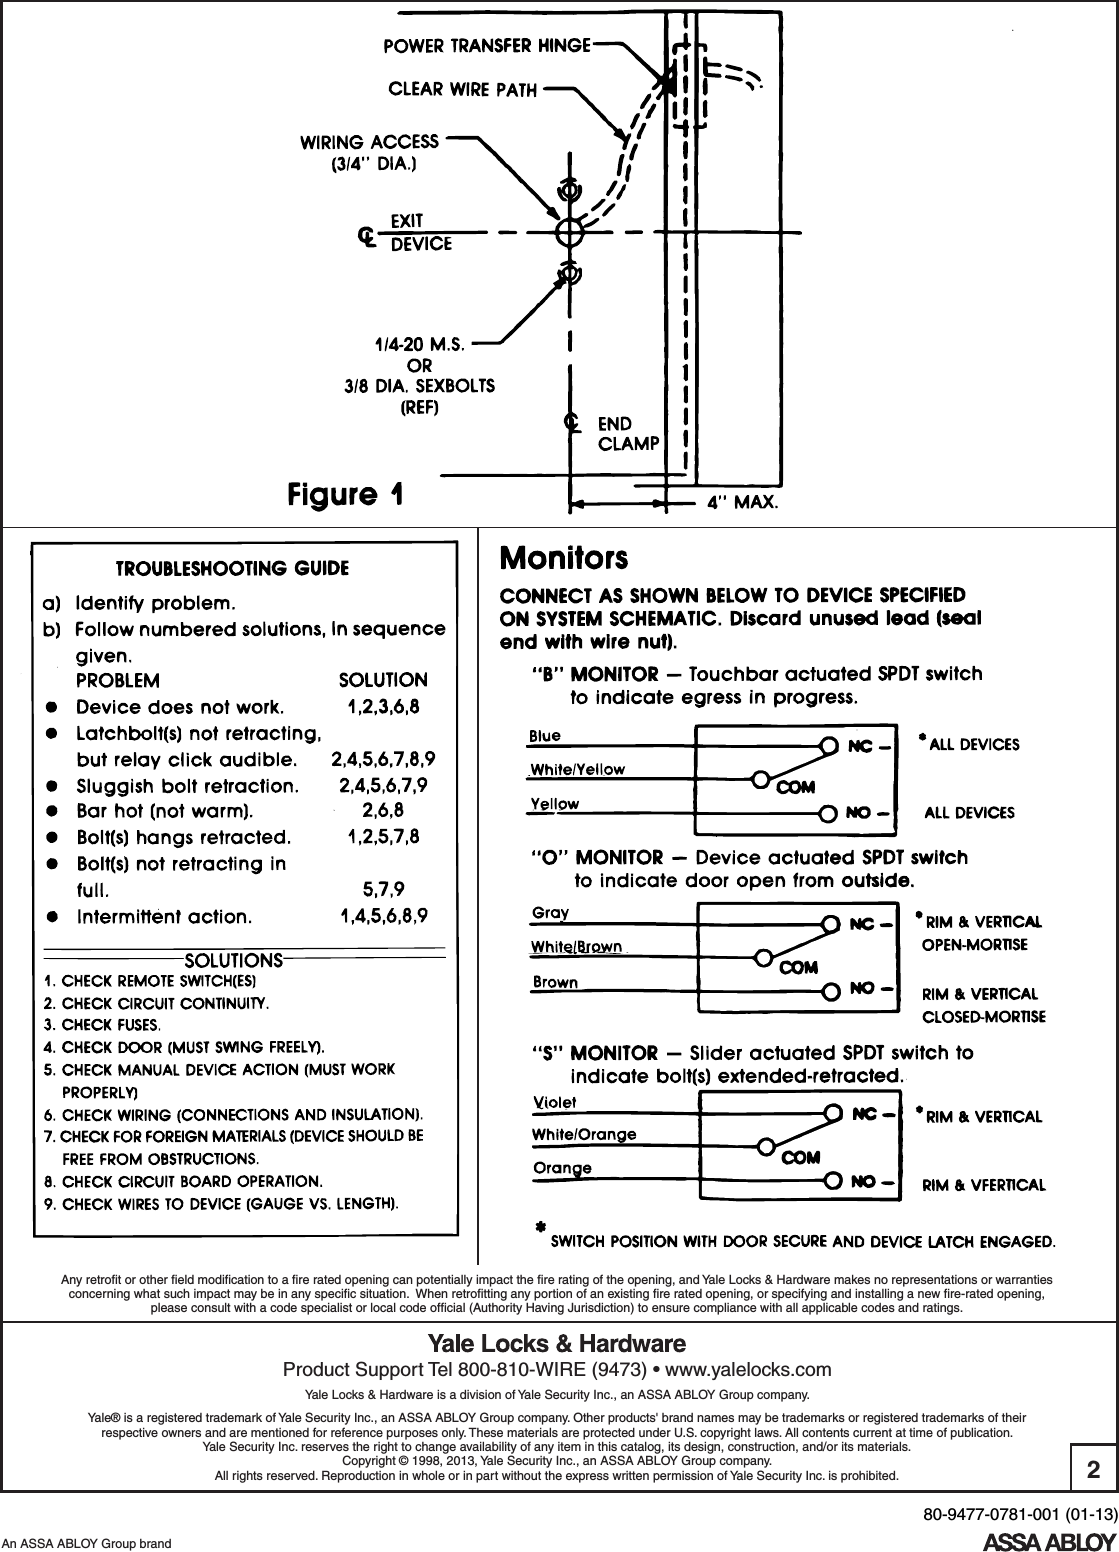 yale 80 9477 0781 001 01 13 exit devices with electric latch rh usermanual wiki Electric Latch Release Von Duprin Electric Latch Retraction